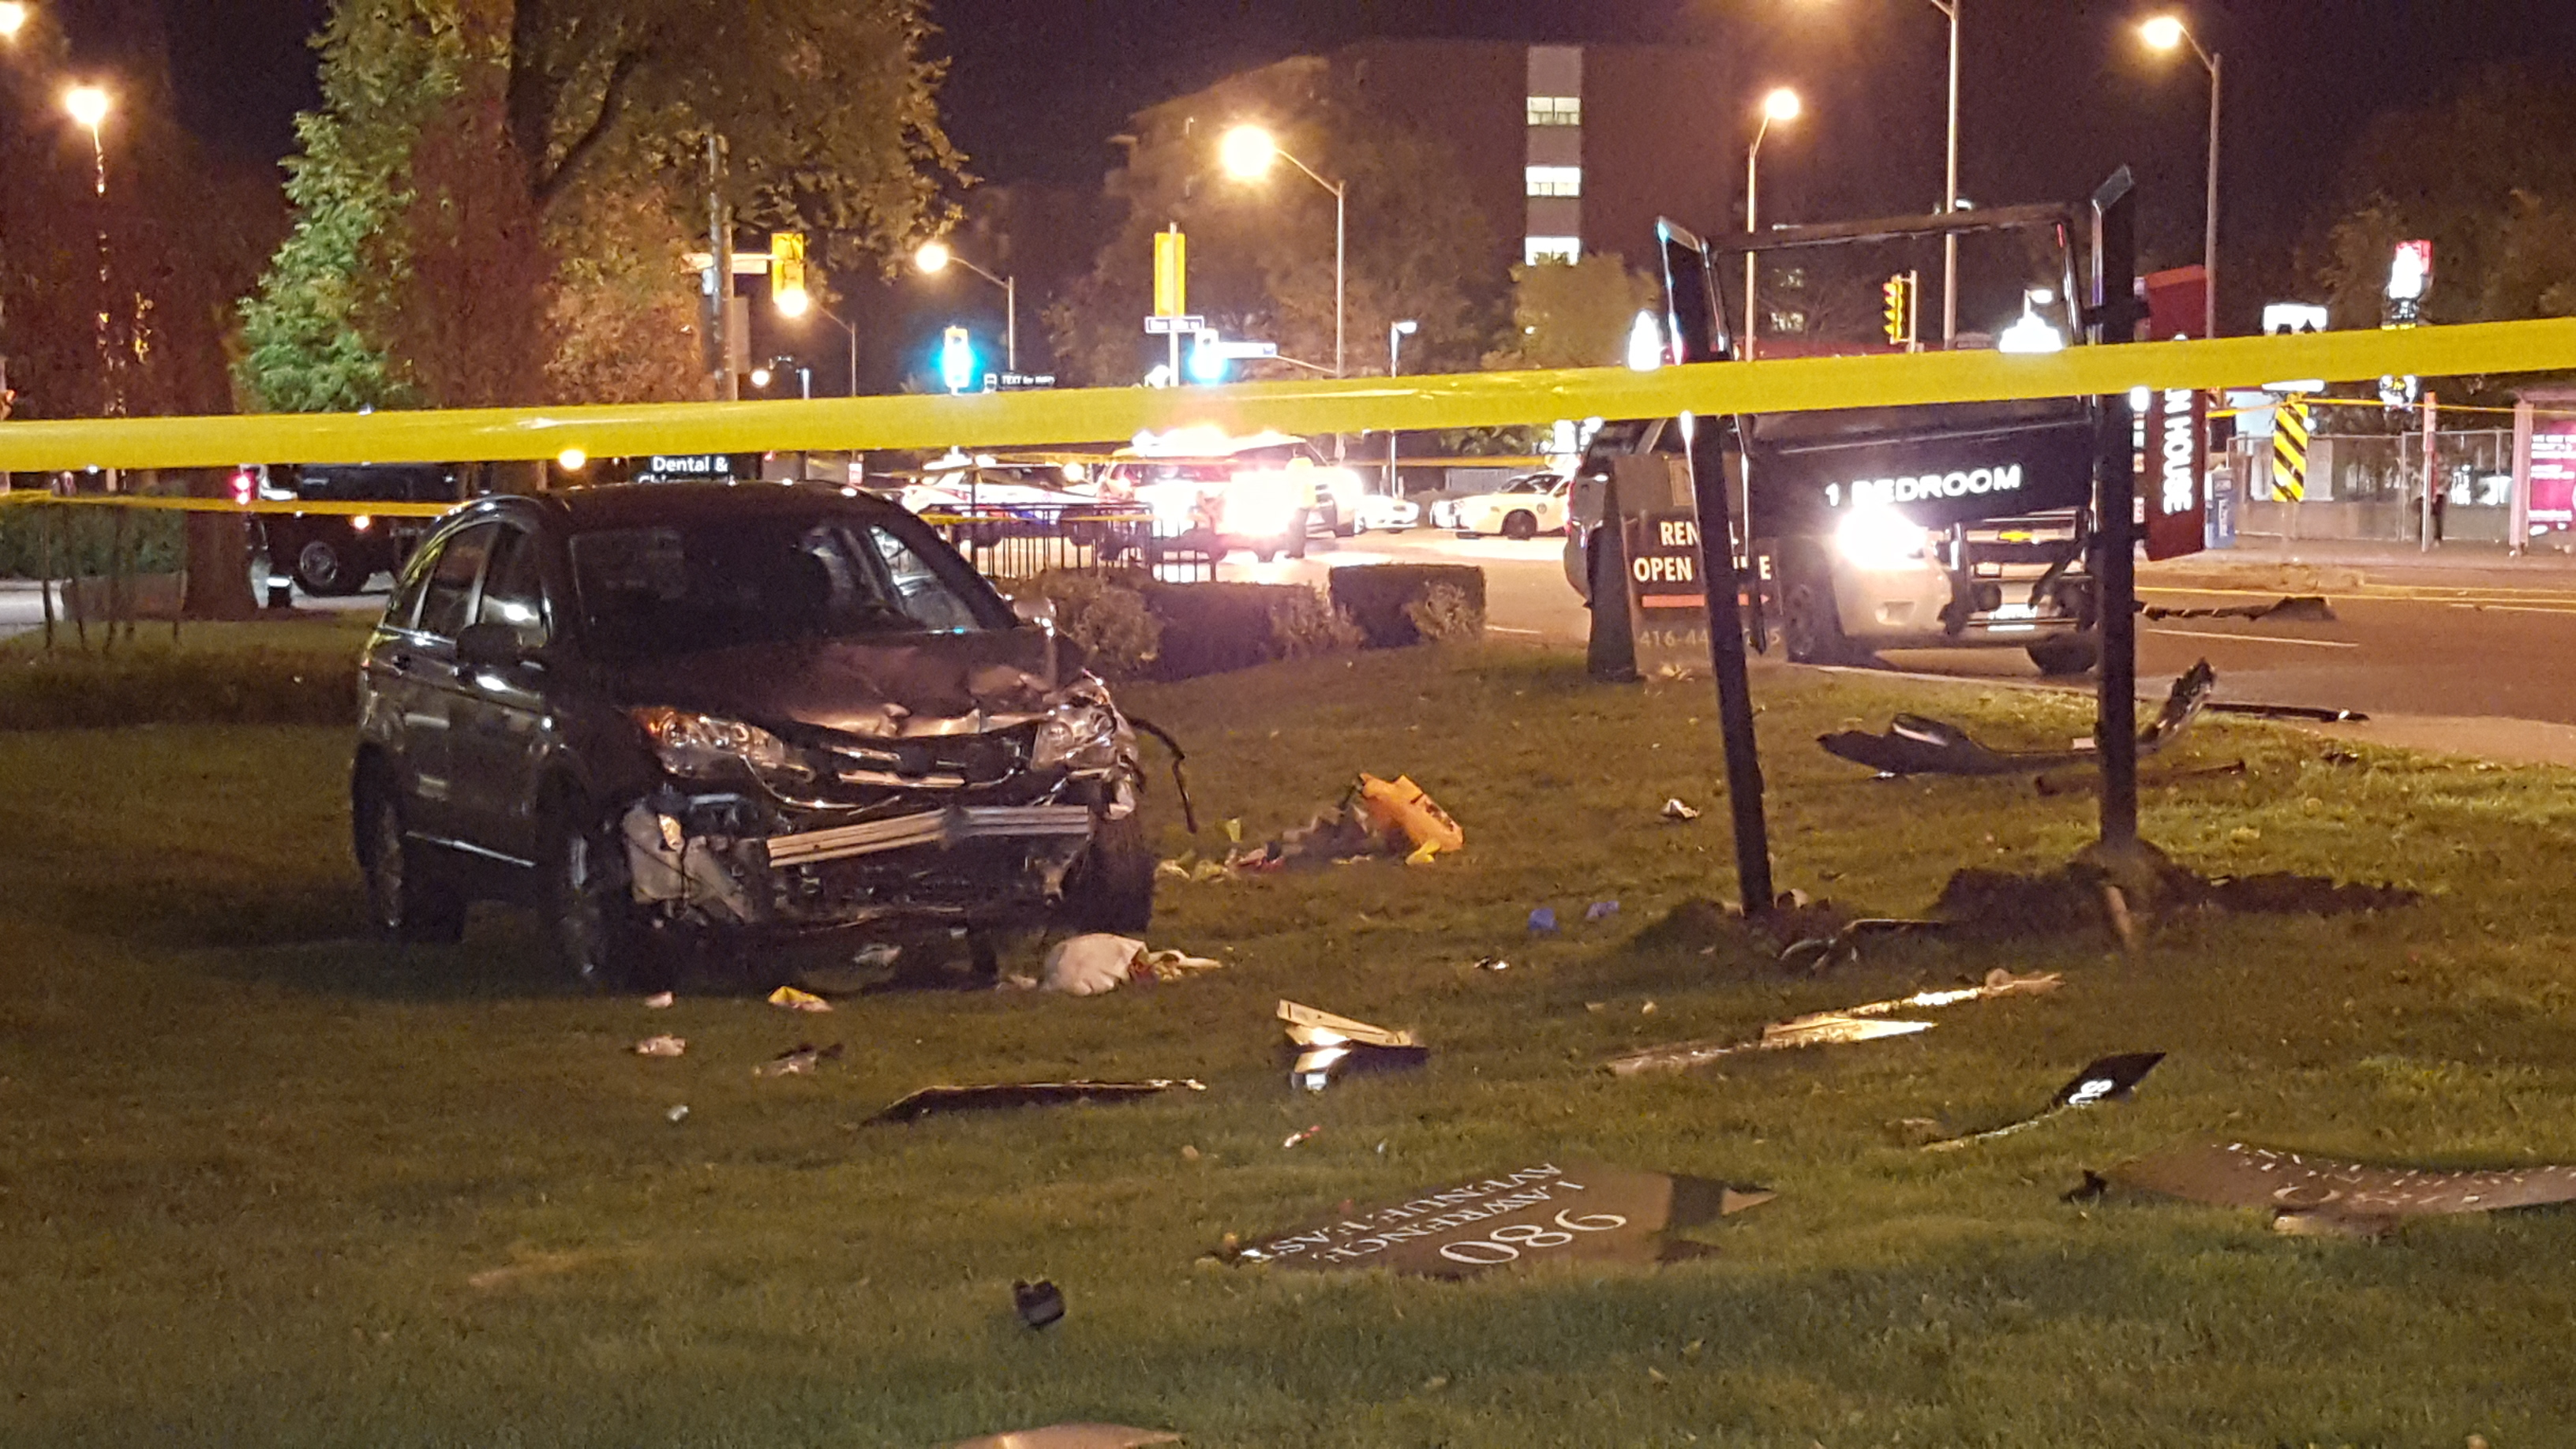 Trick-or-treating Toronto teens seriously injured after being hit by auto